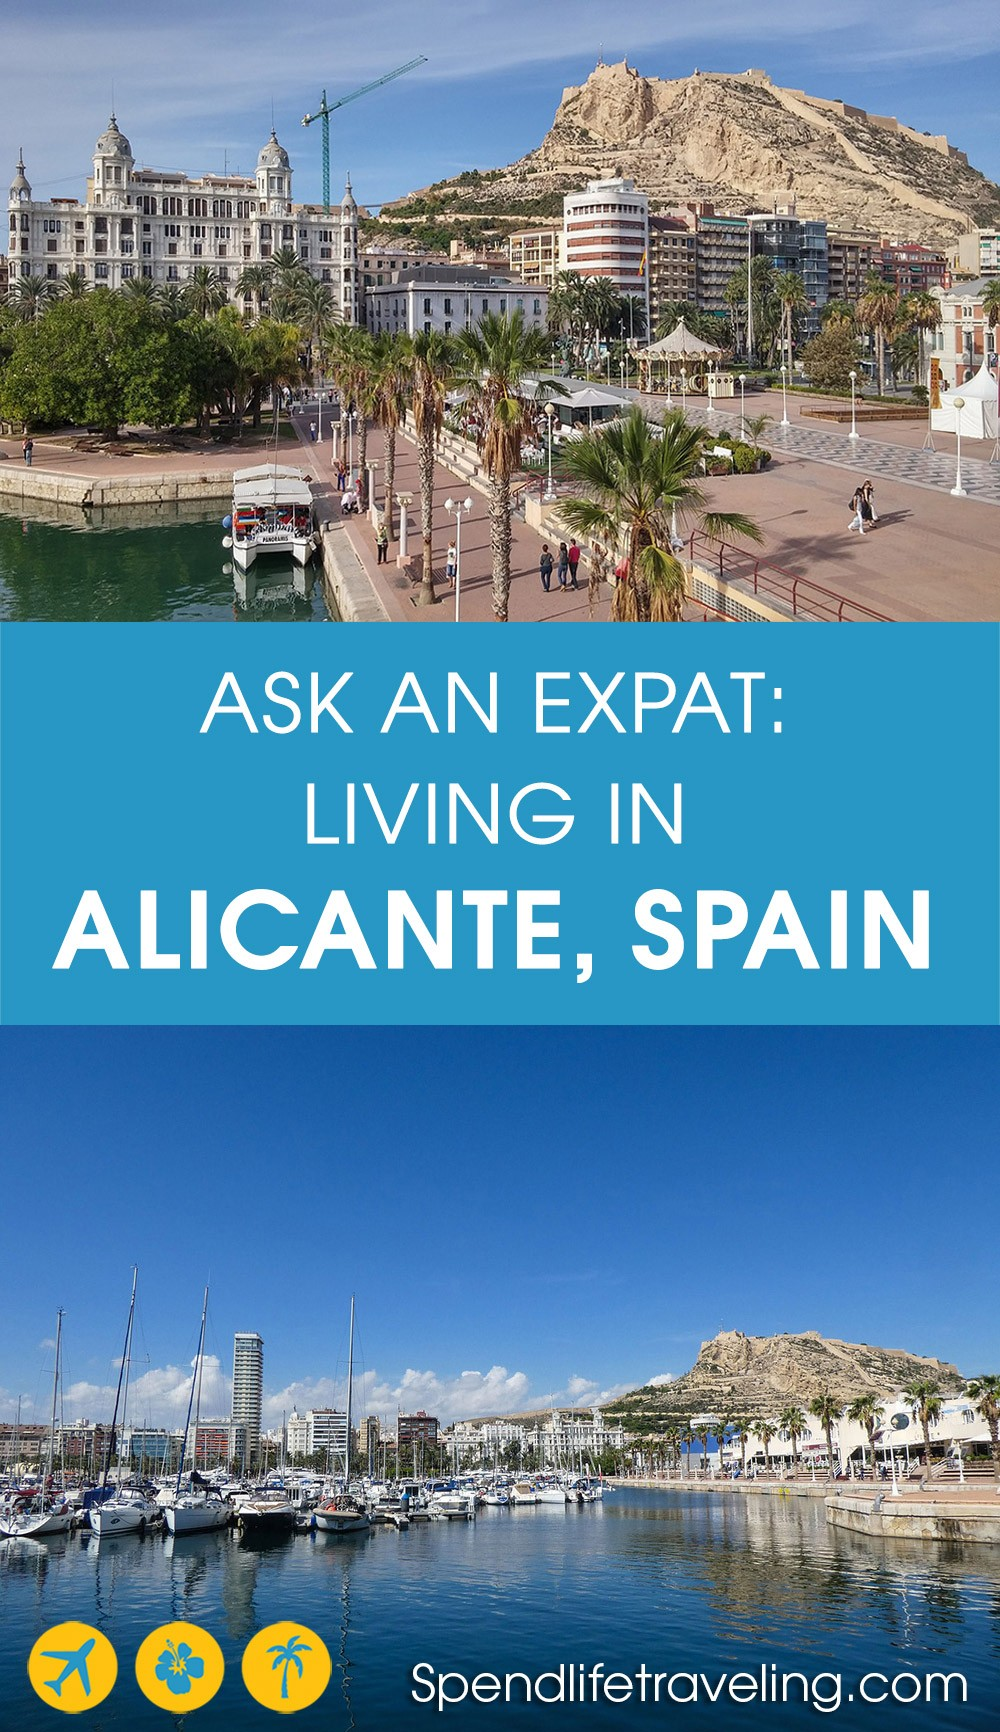 Interview with an expat about waht it's like to move to and live in #Alicante, Spain